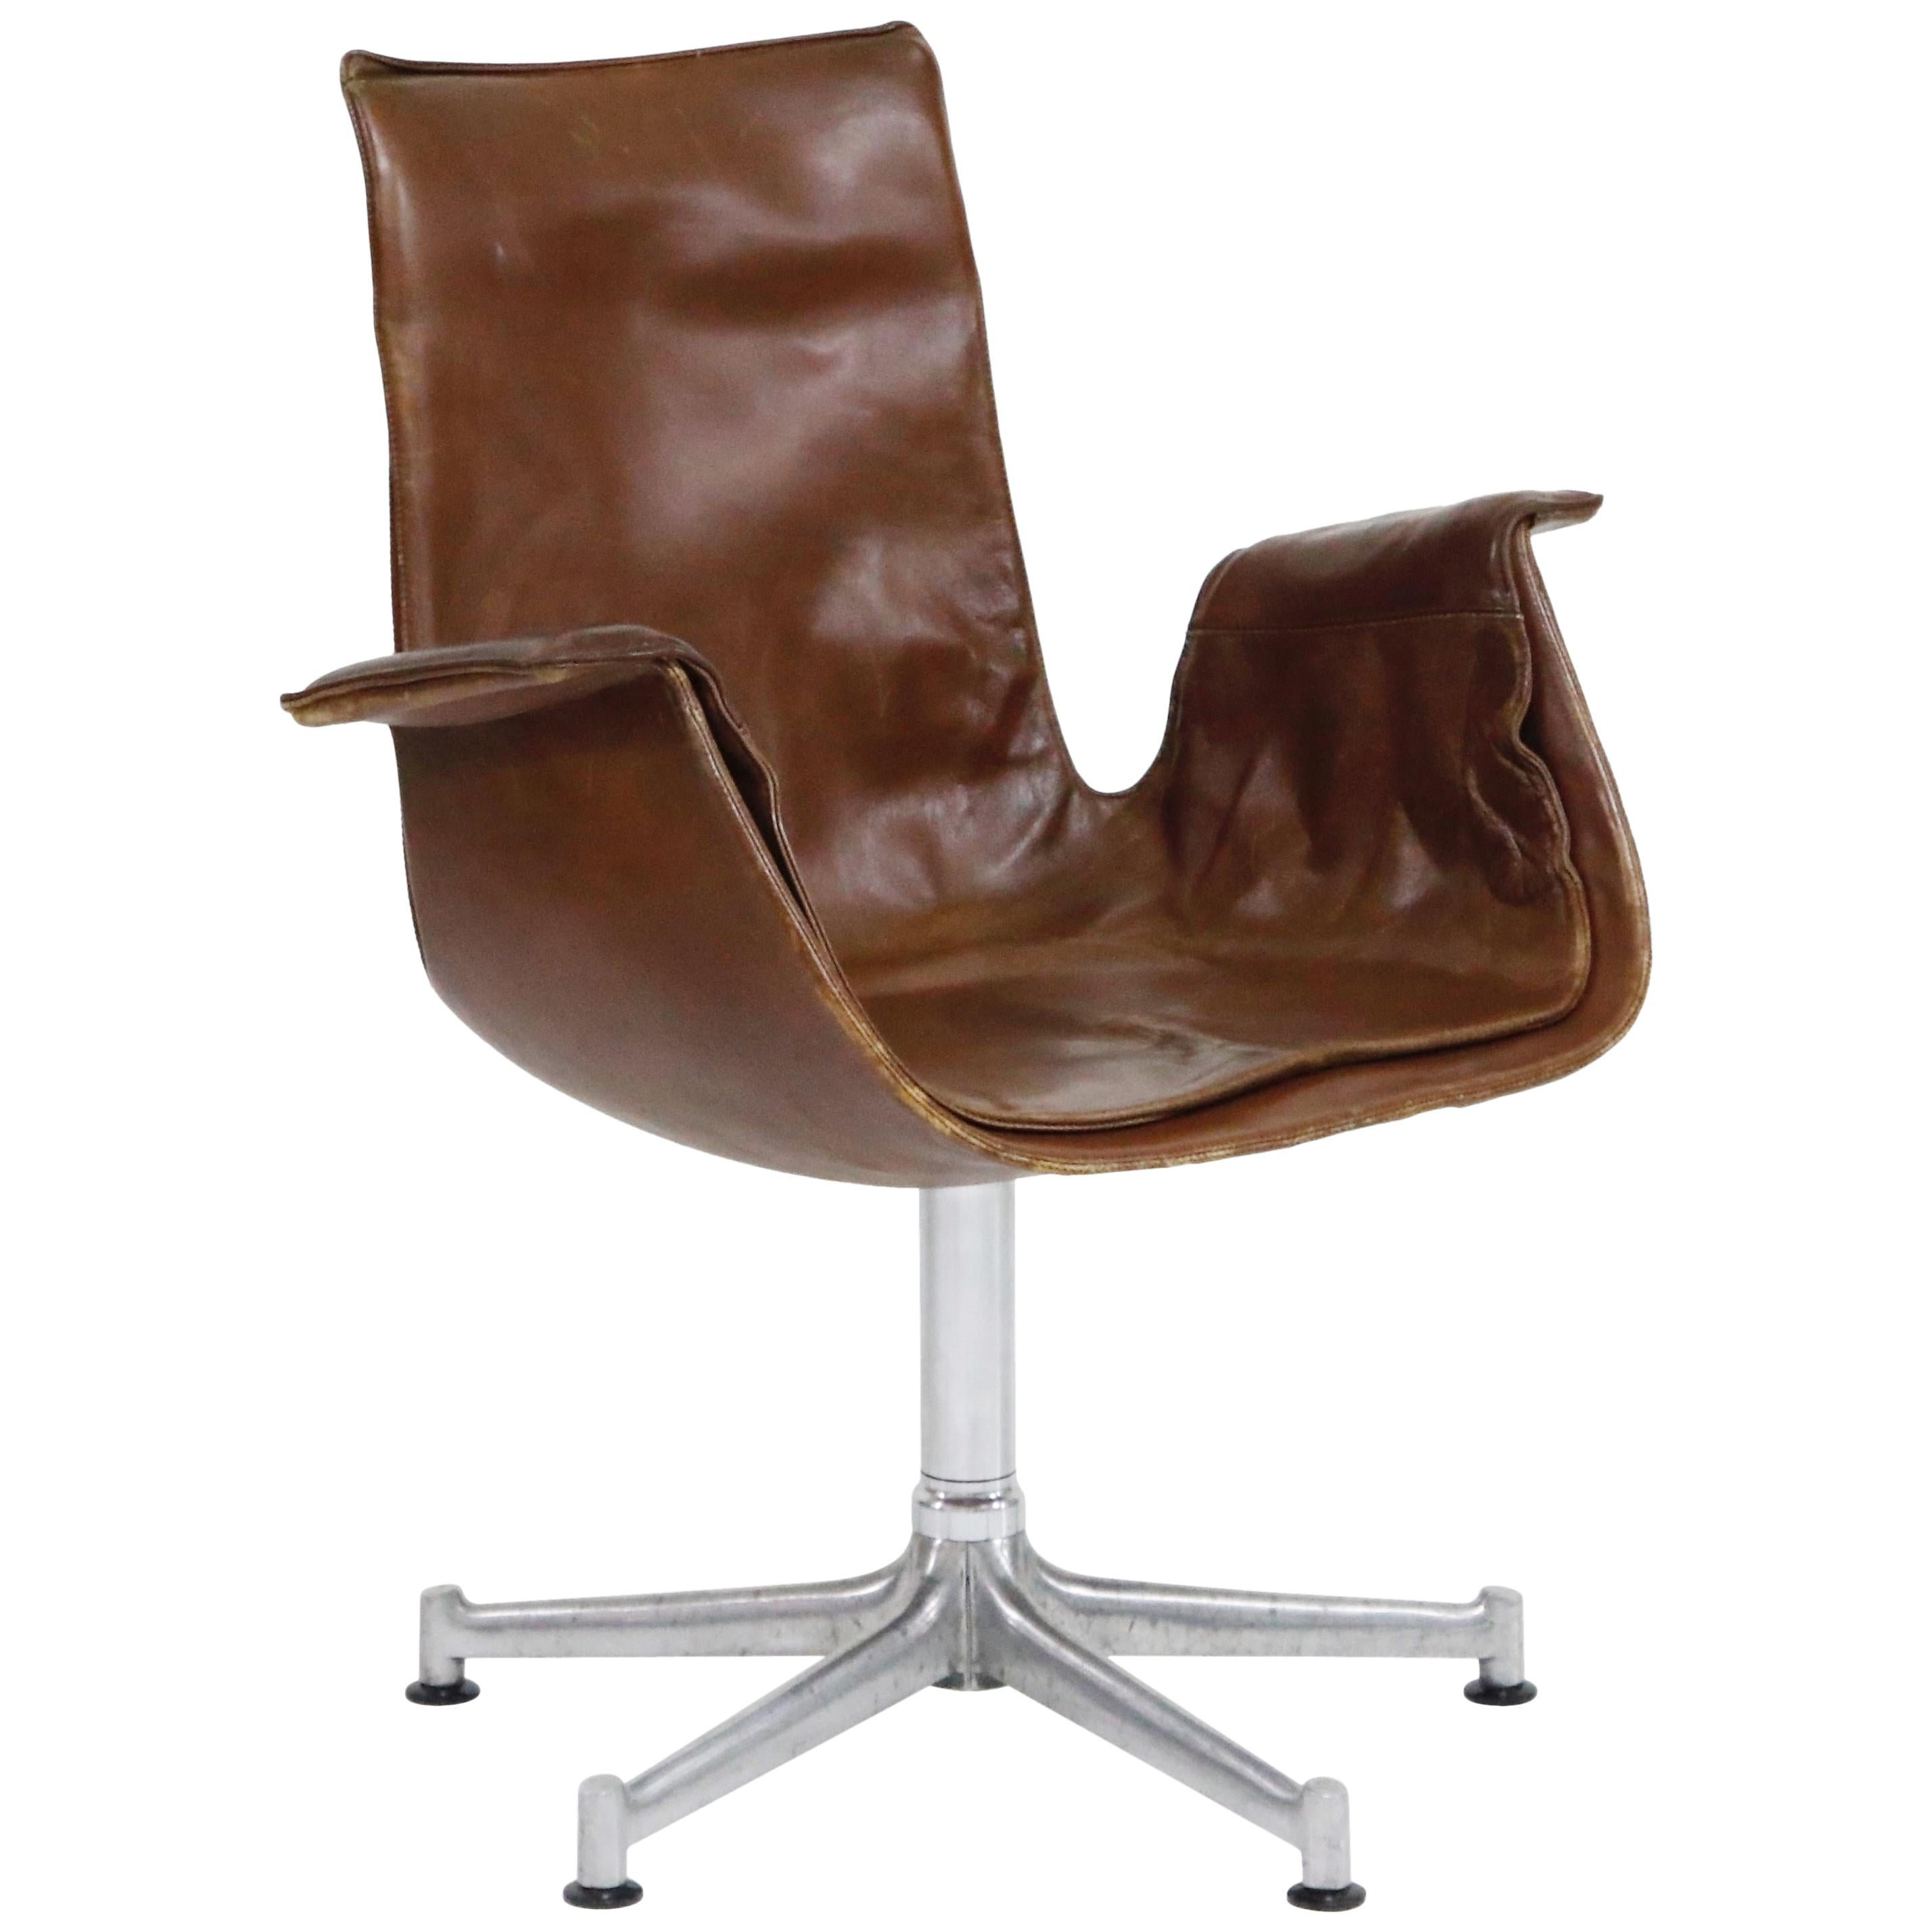 a9d316a4ccd71 Antique, Vintage, Mid-Century and Modern Furniture - 531,896 For ...